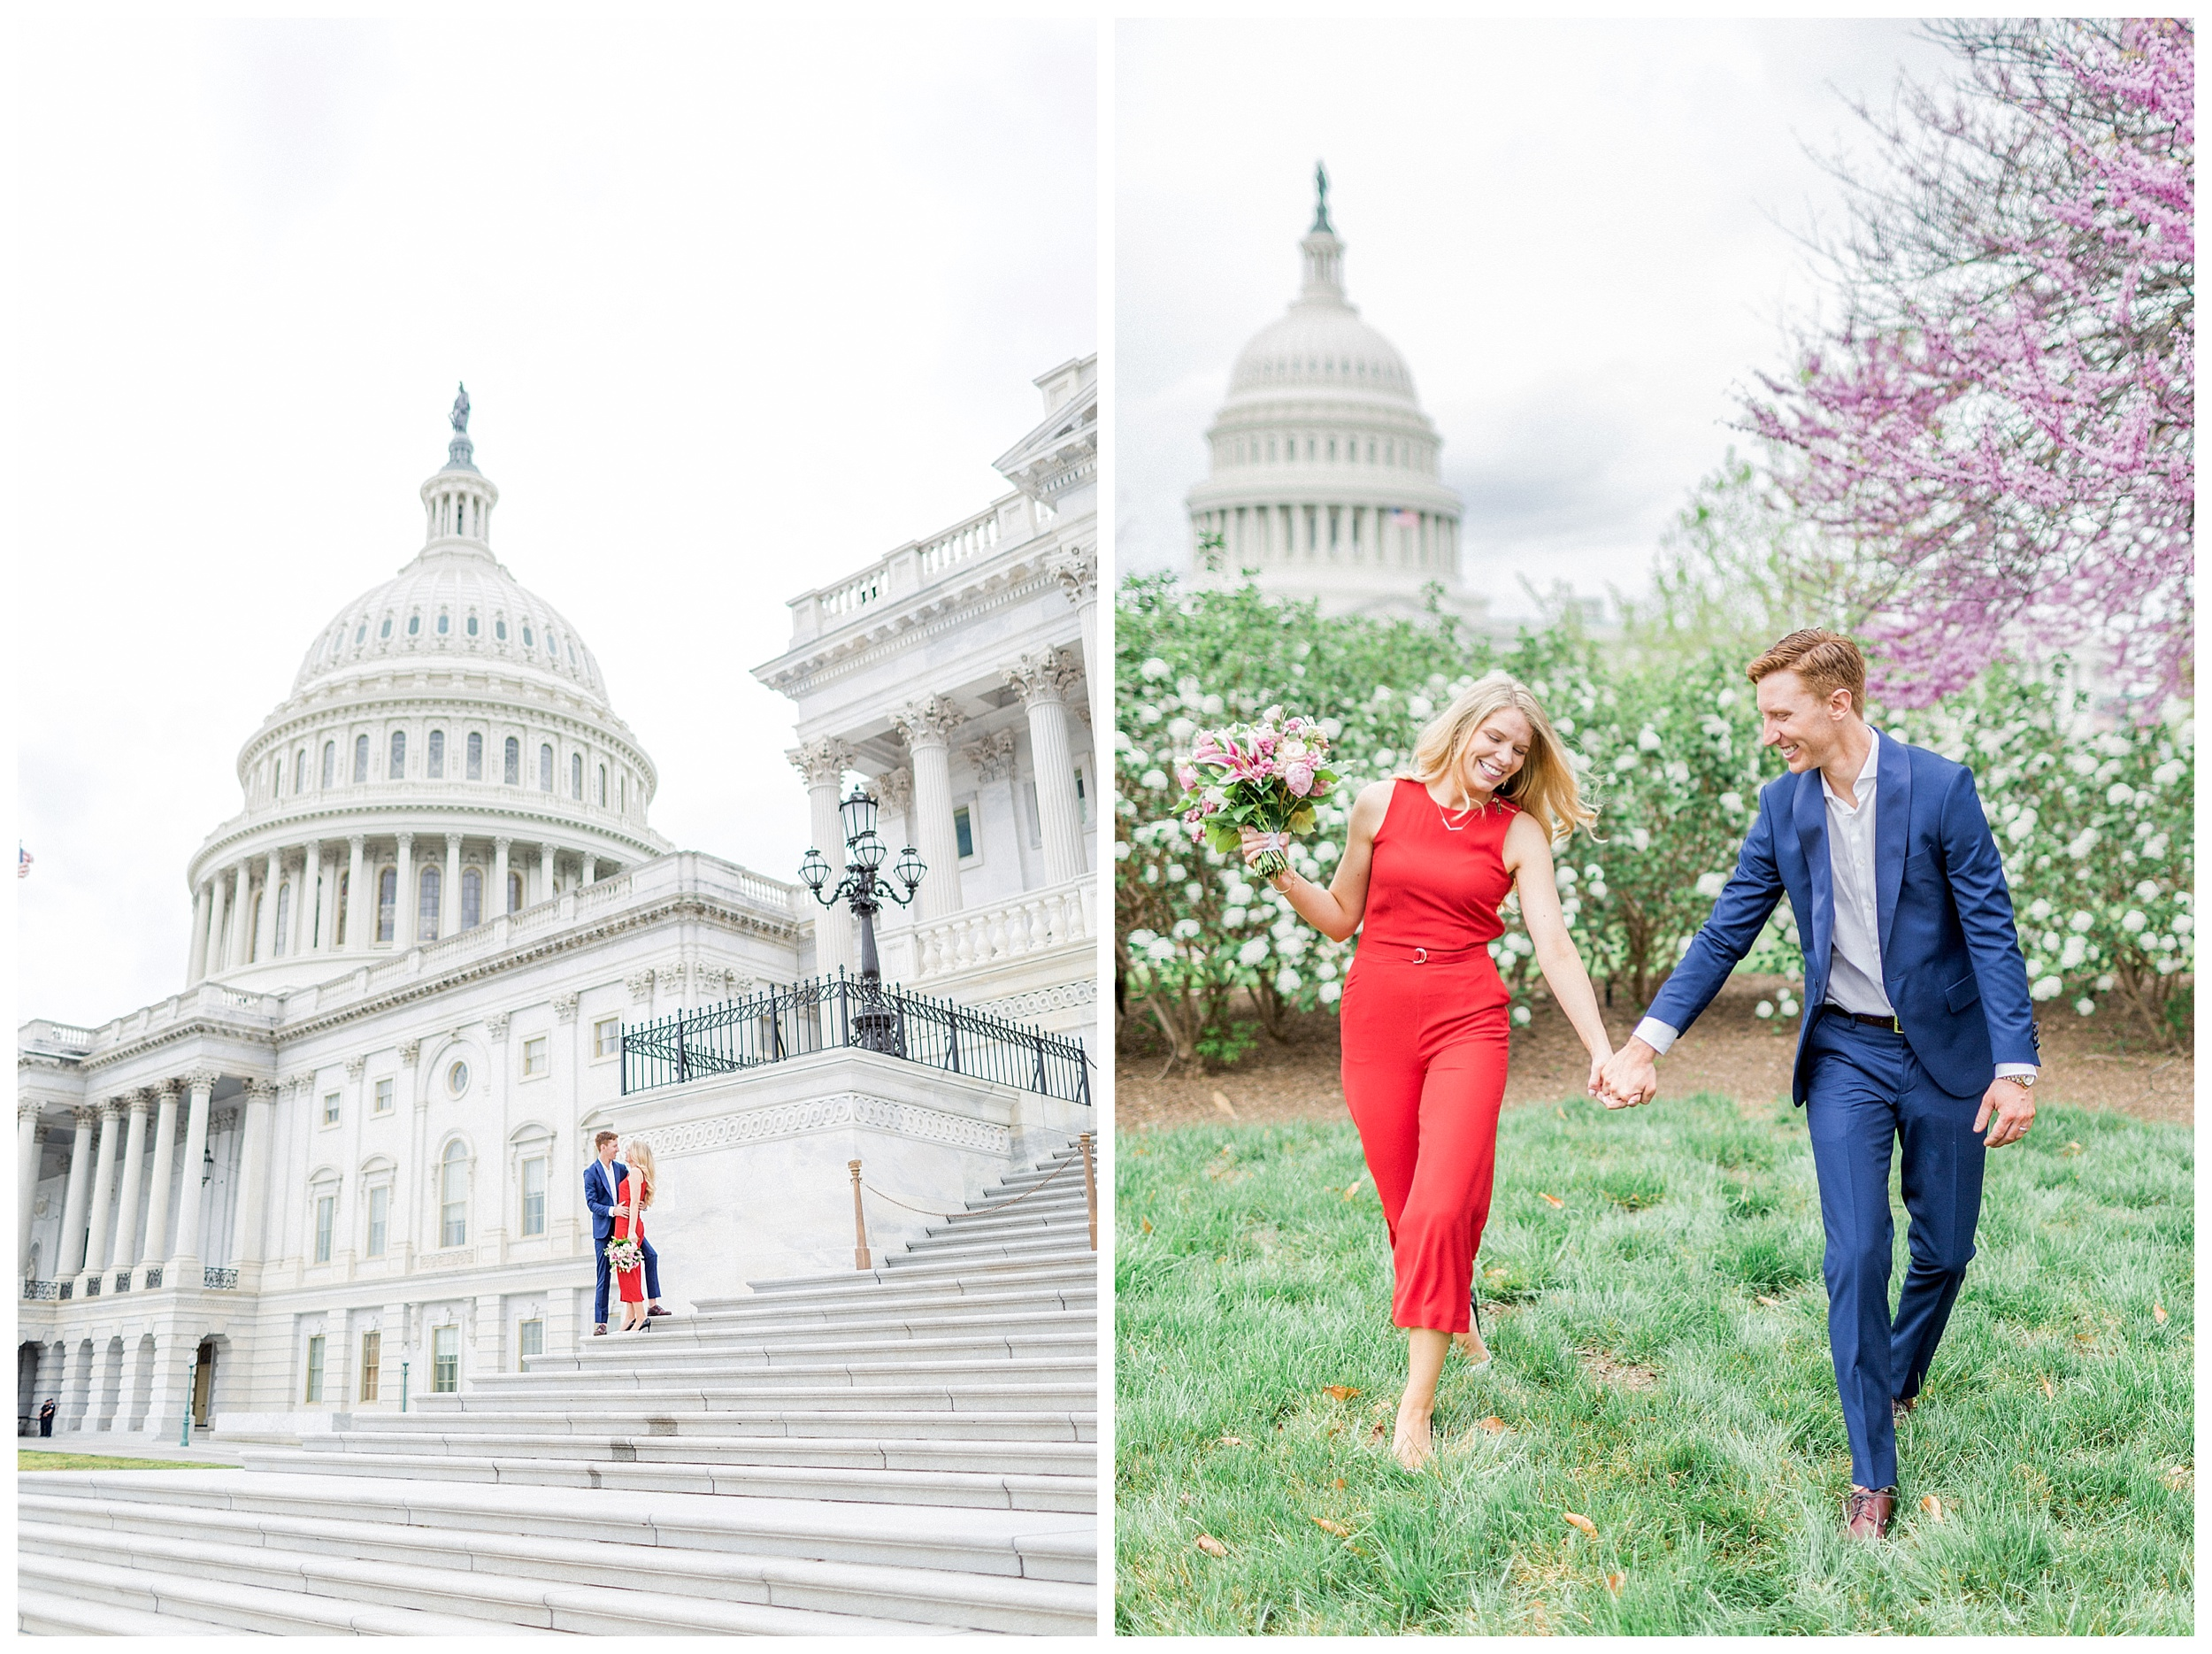 District of Columbia Elopement | Library of Congress Engagement Session Washington DC_0032.jpg